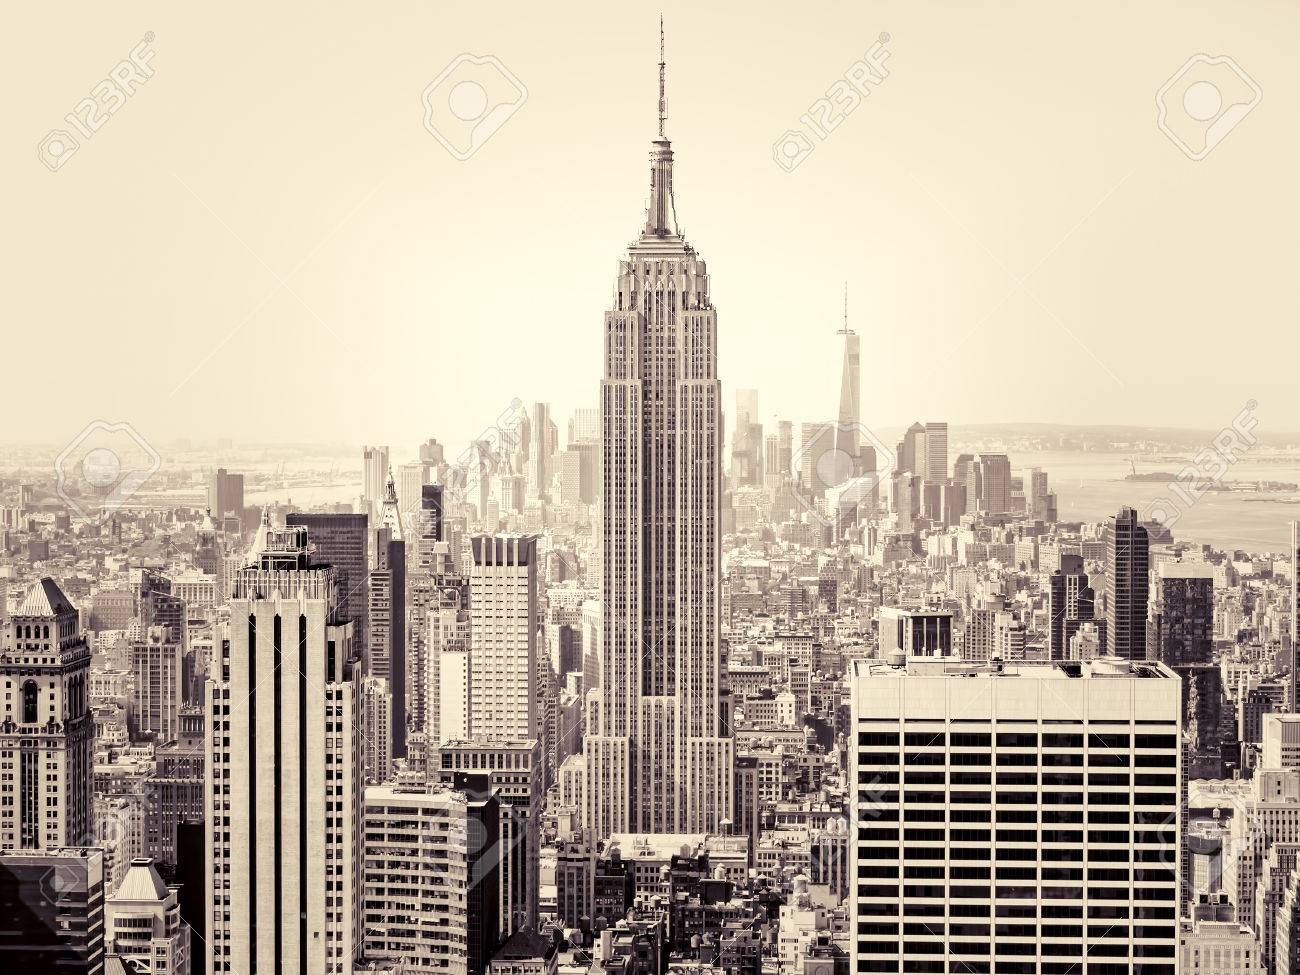 Aerial view of New York City with the Empire State Building on the foreground - 45213771